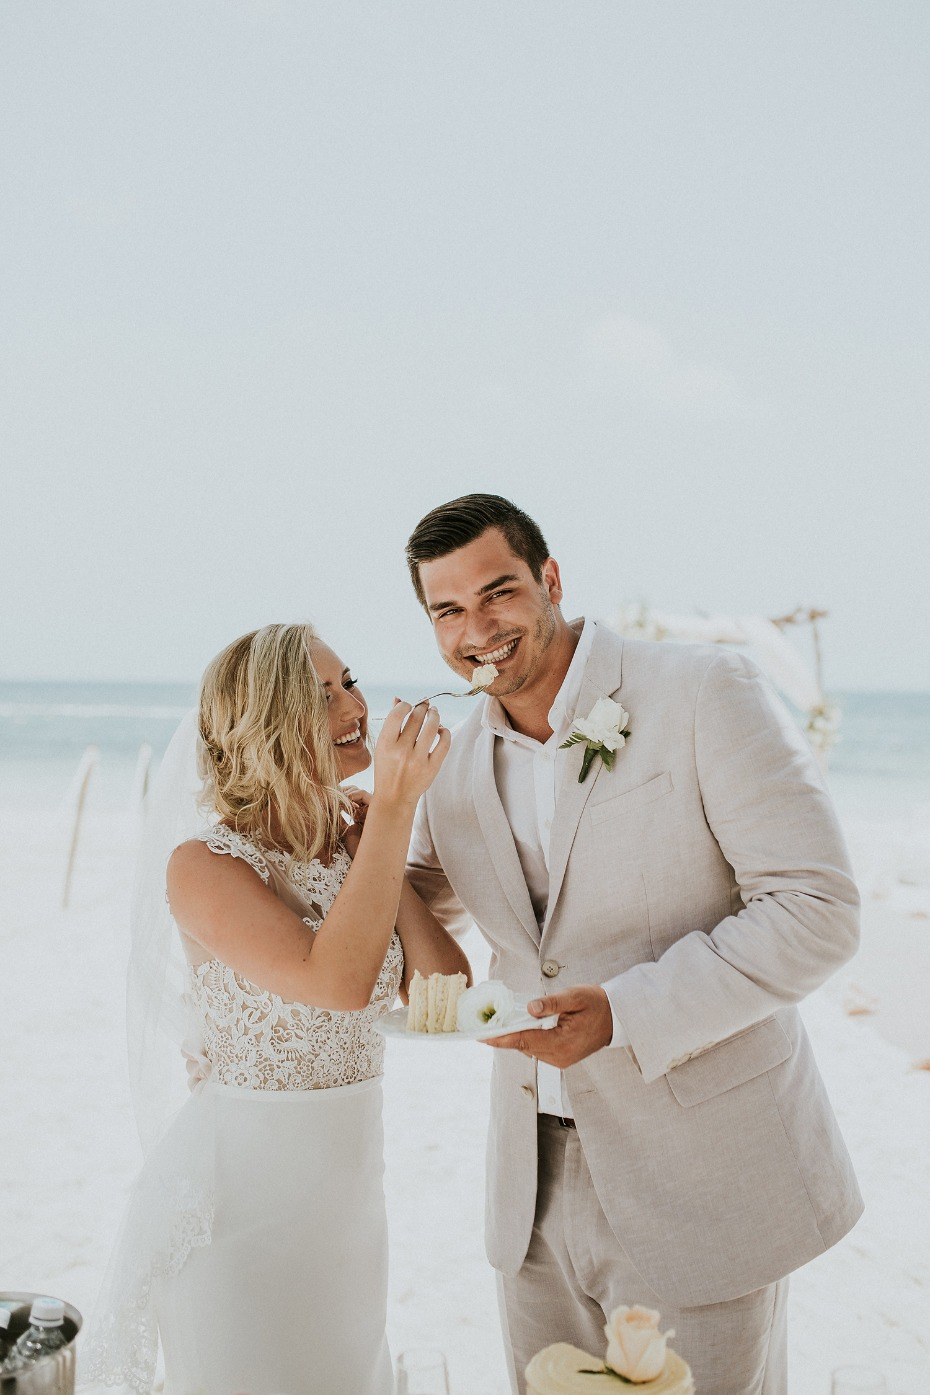 Intimate beach wedding in Mexico